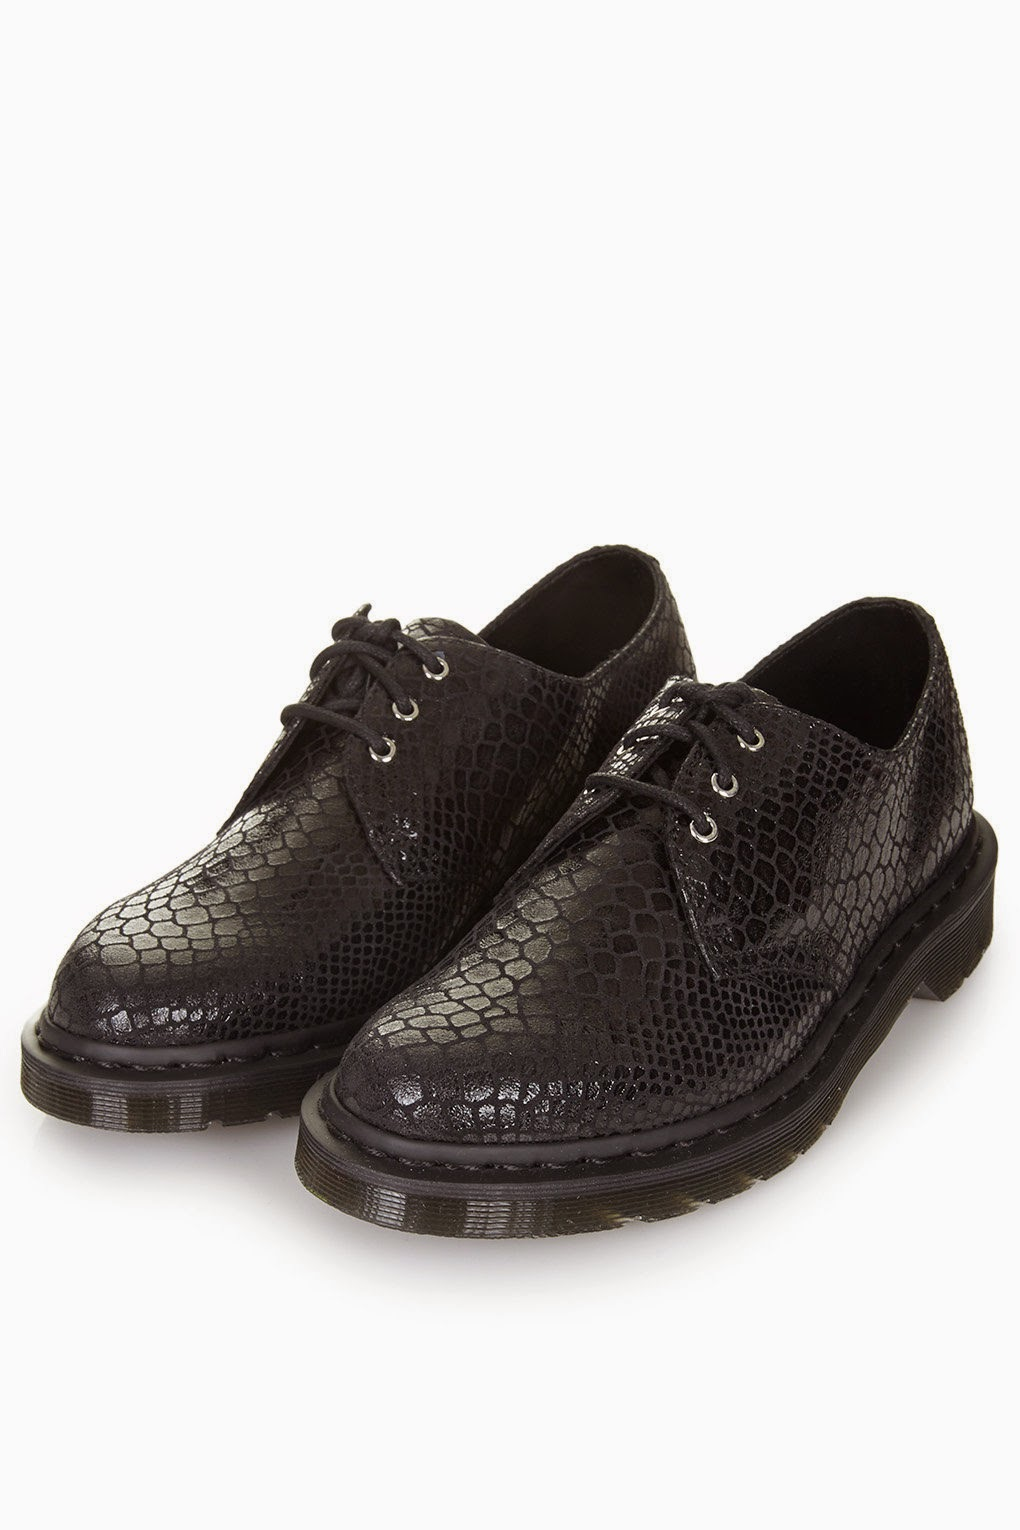 croc print dr martens, dr martens 3 eye shoes,